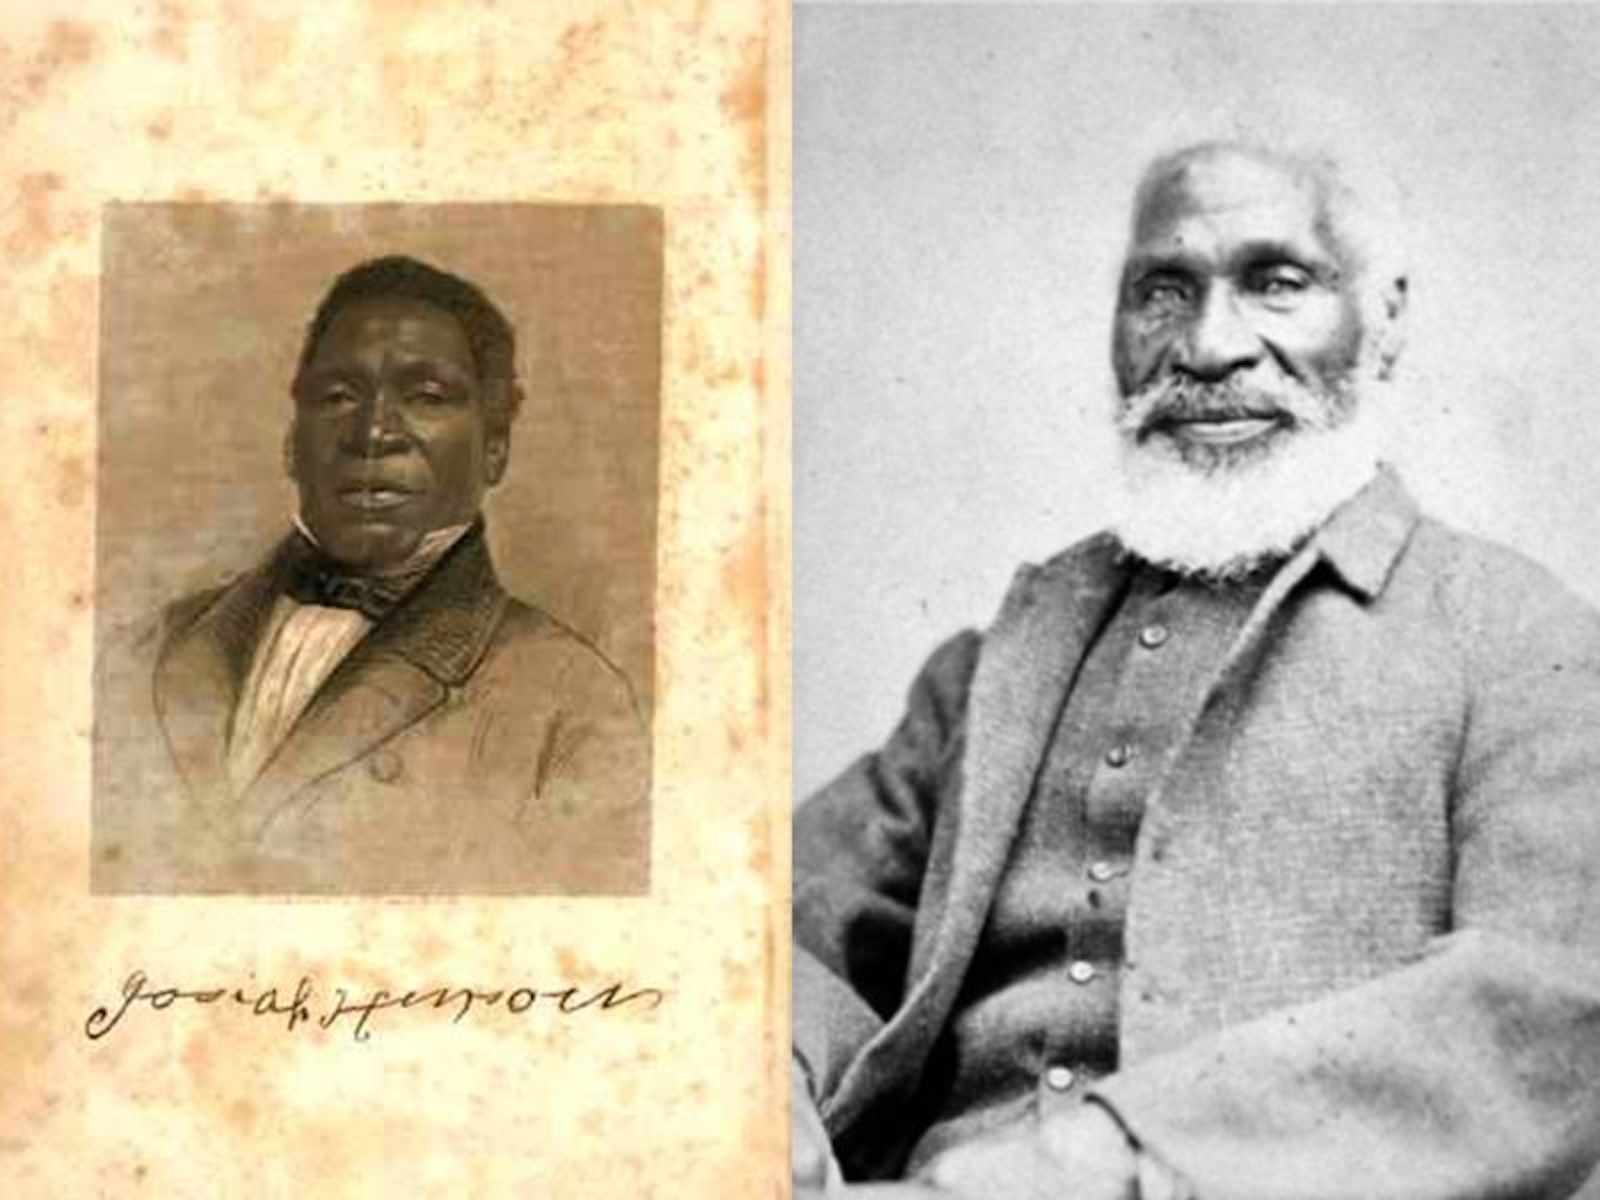 Josiah Henson, Uncle Tom's Cabin, African American History, Black History, American History, U.S. History, KOLUMN Magazine, KOLUMN, KINDR'D Magazine, KINDR'D, Willoughby Avenue, Wriit,